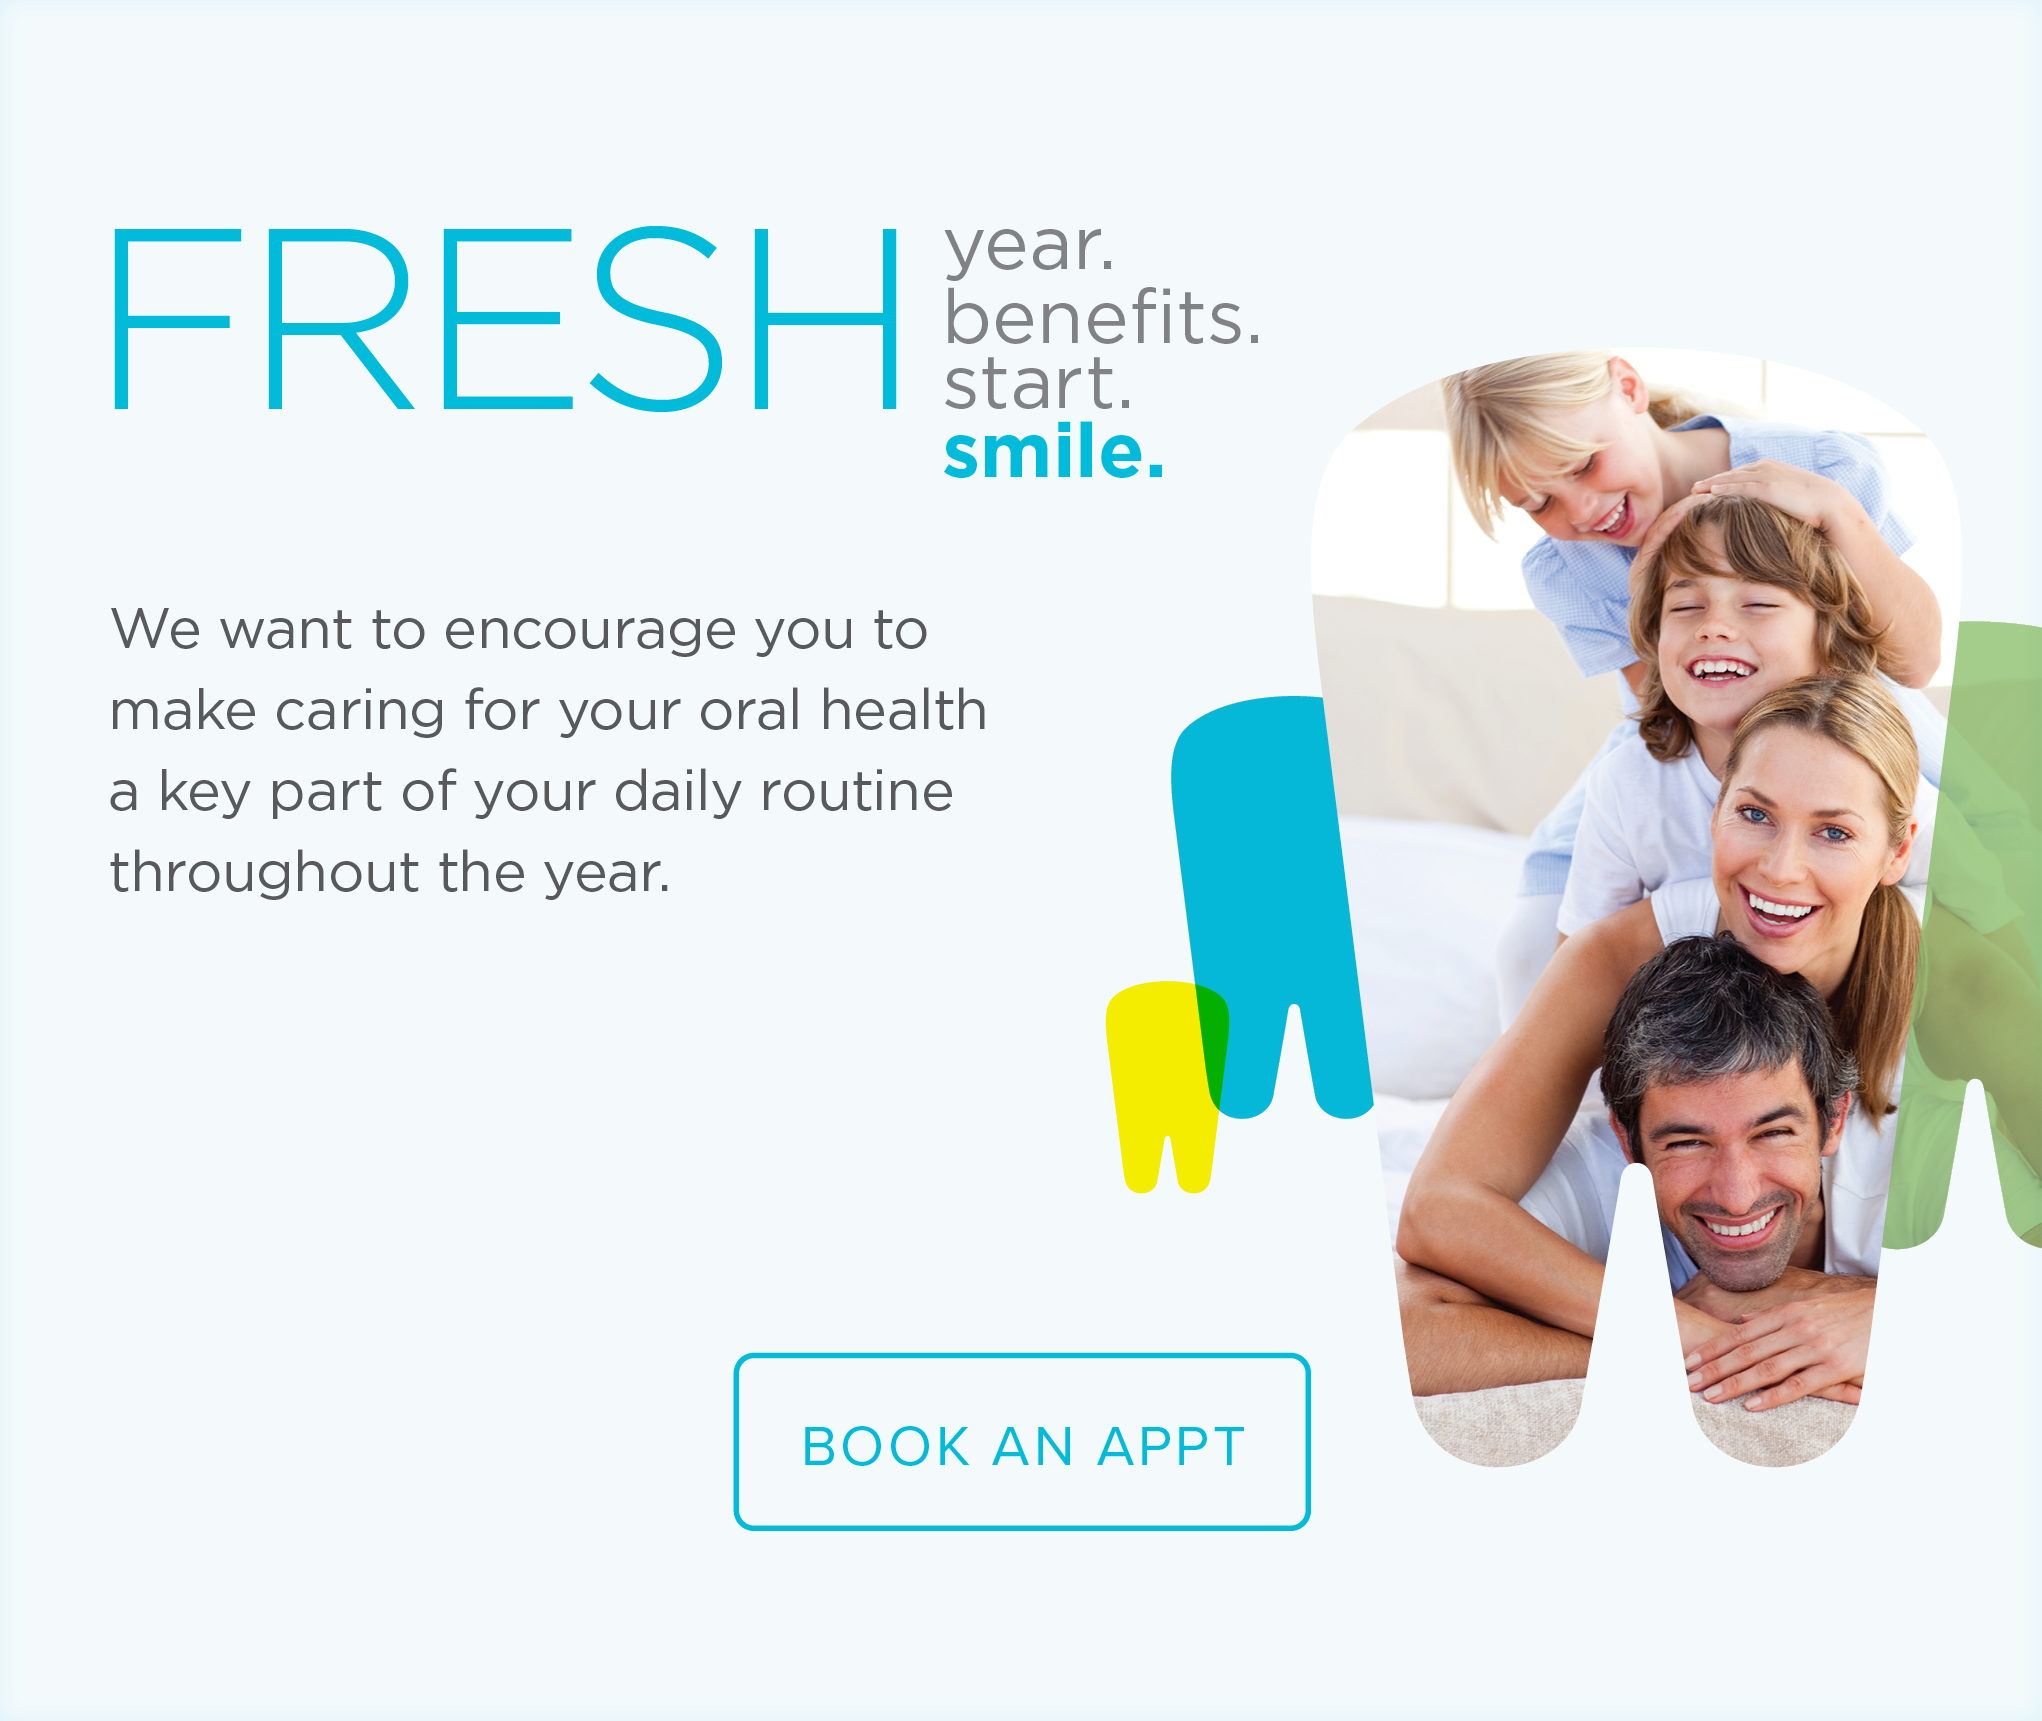 Cedar Hill Modern Dentistry and Orthodontics - Make the Most of Your Benefits